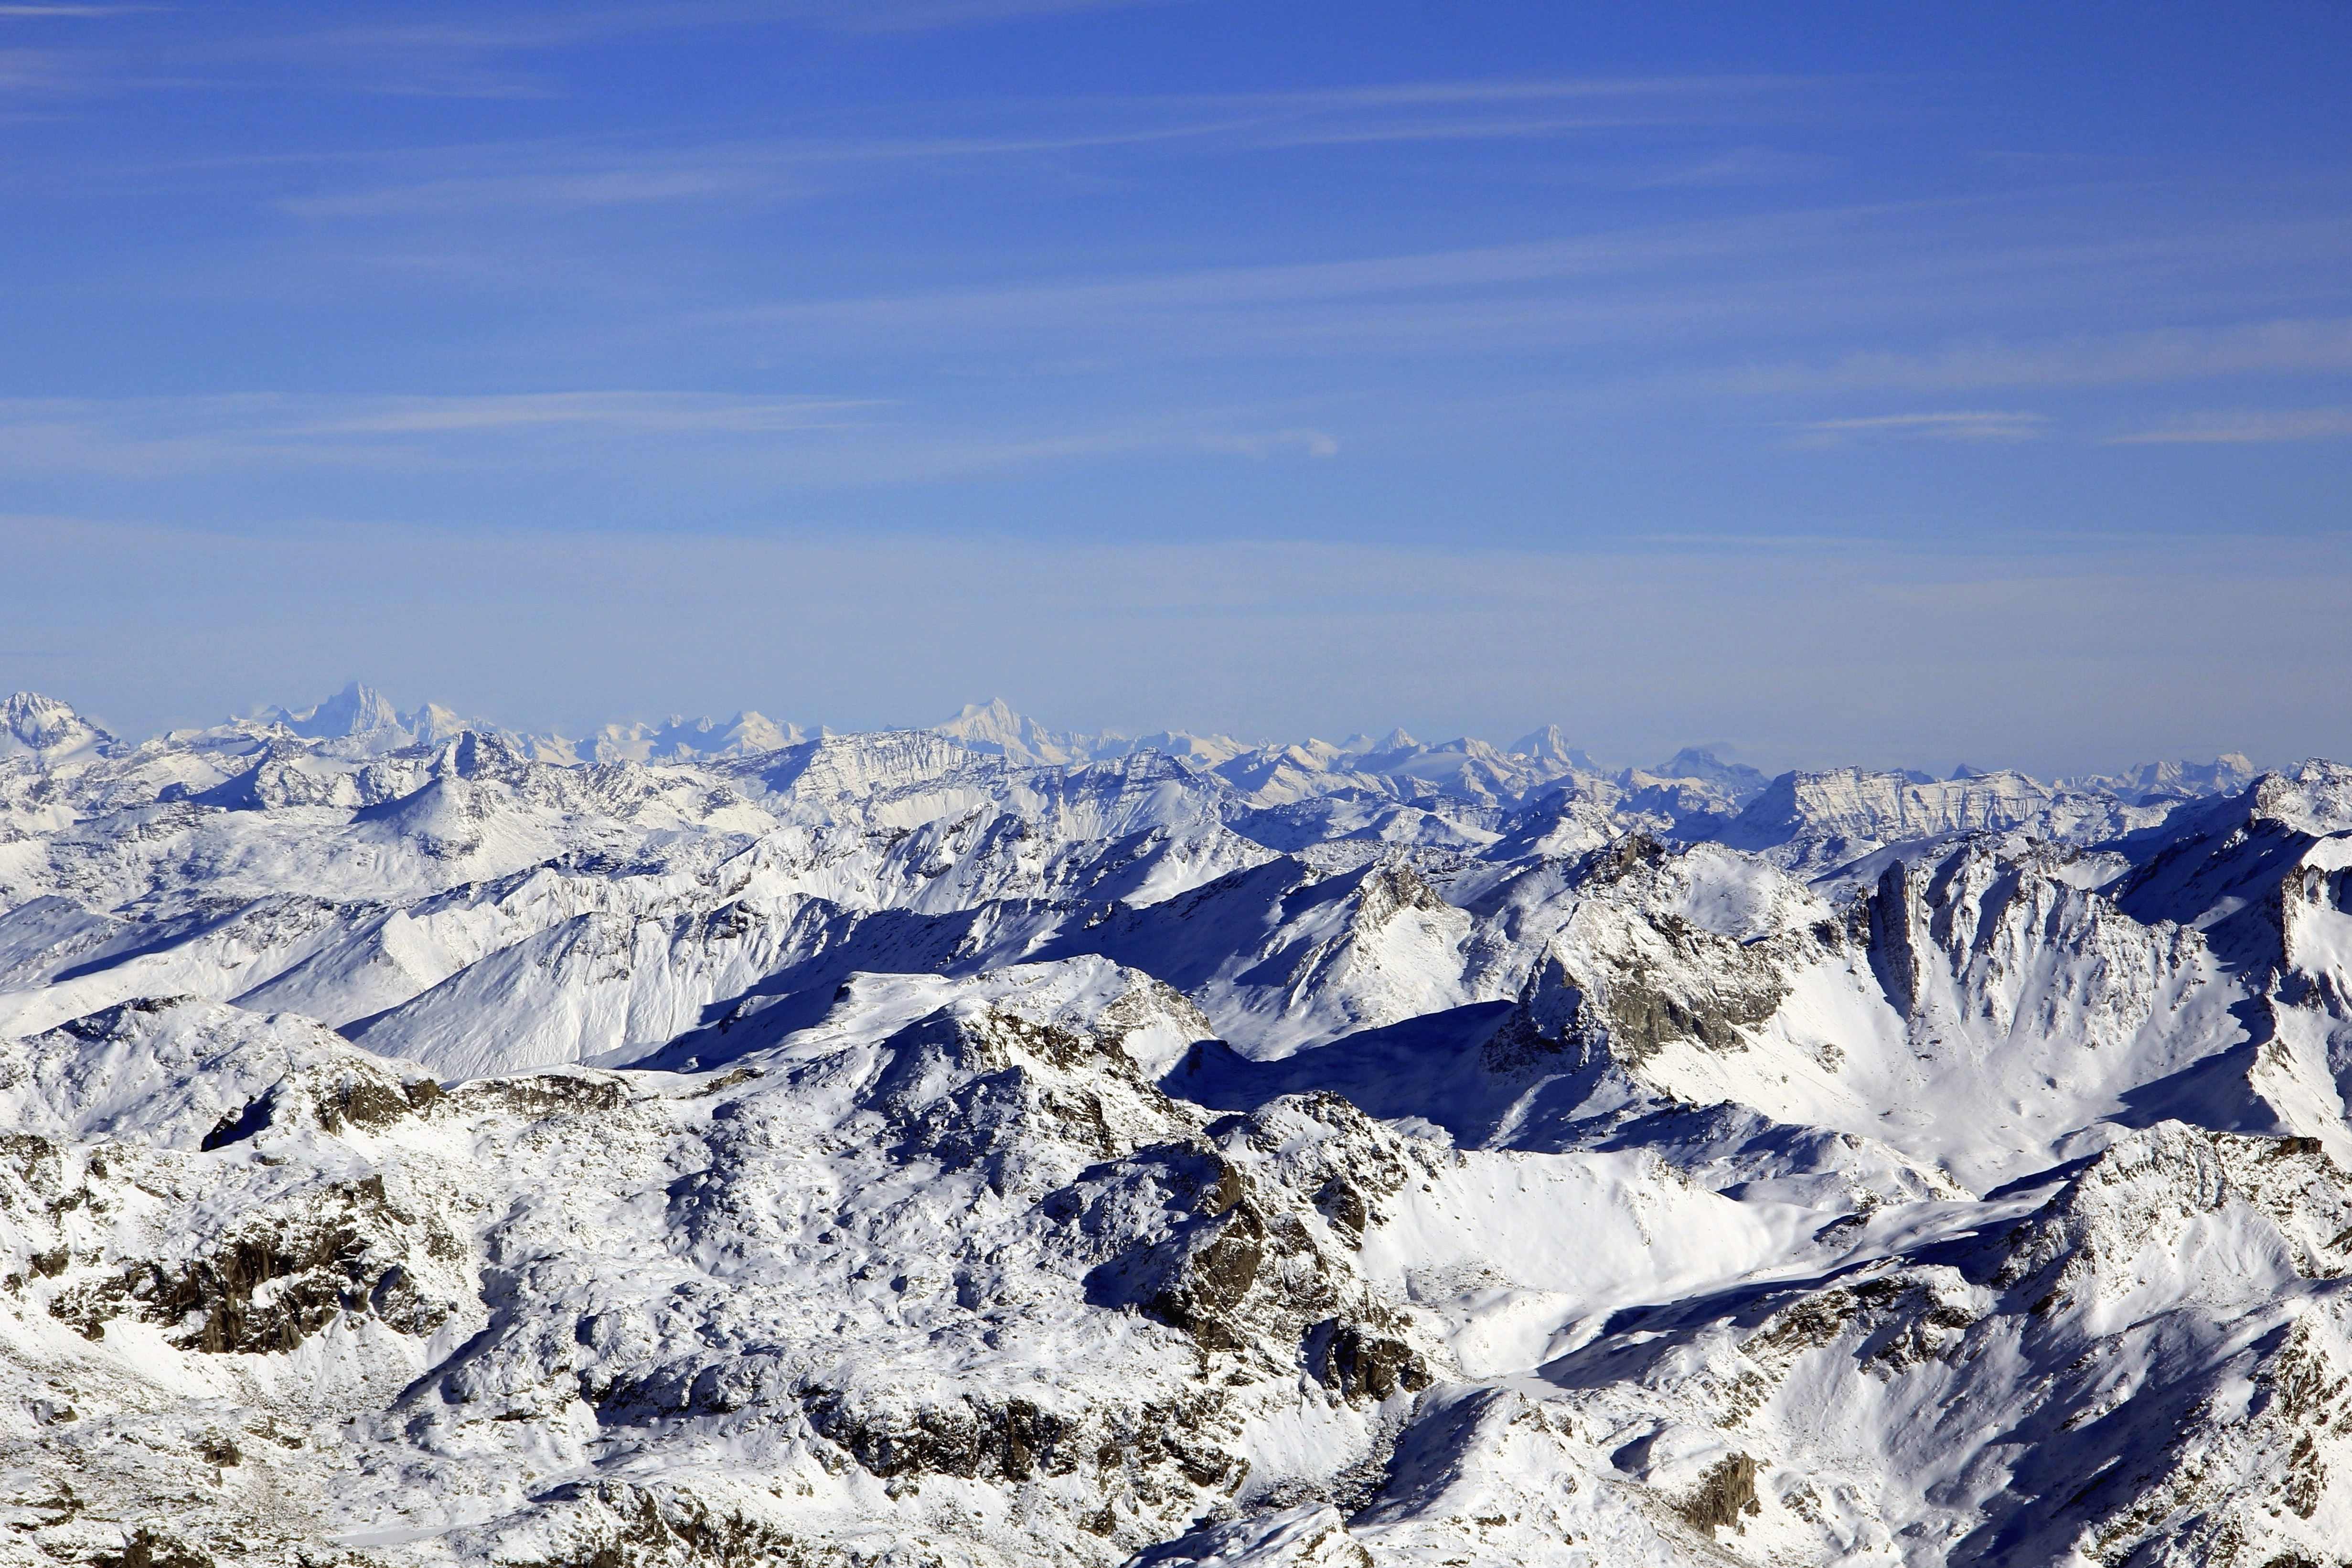 Free picture: sky, mountains, snow, winter, cold, frozen ...